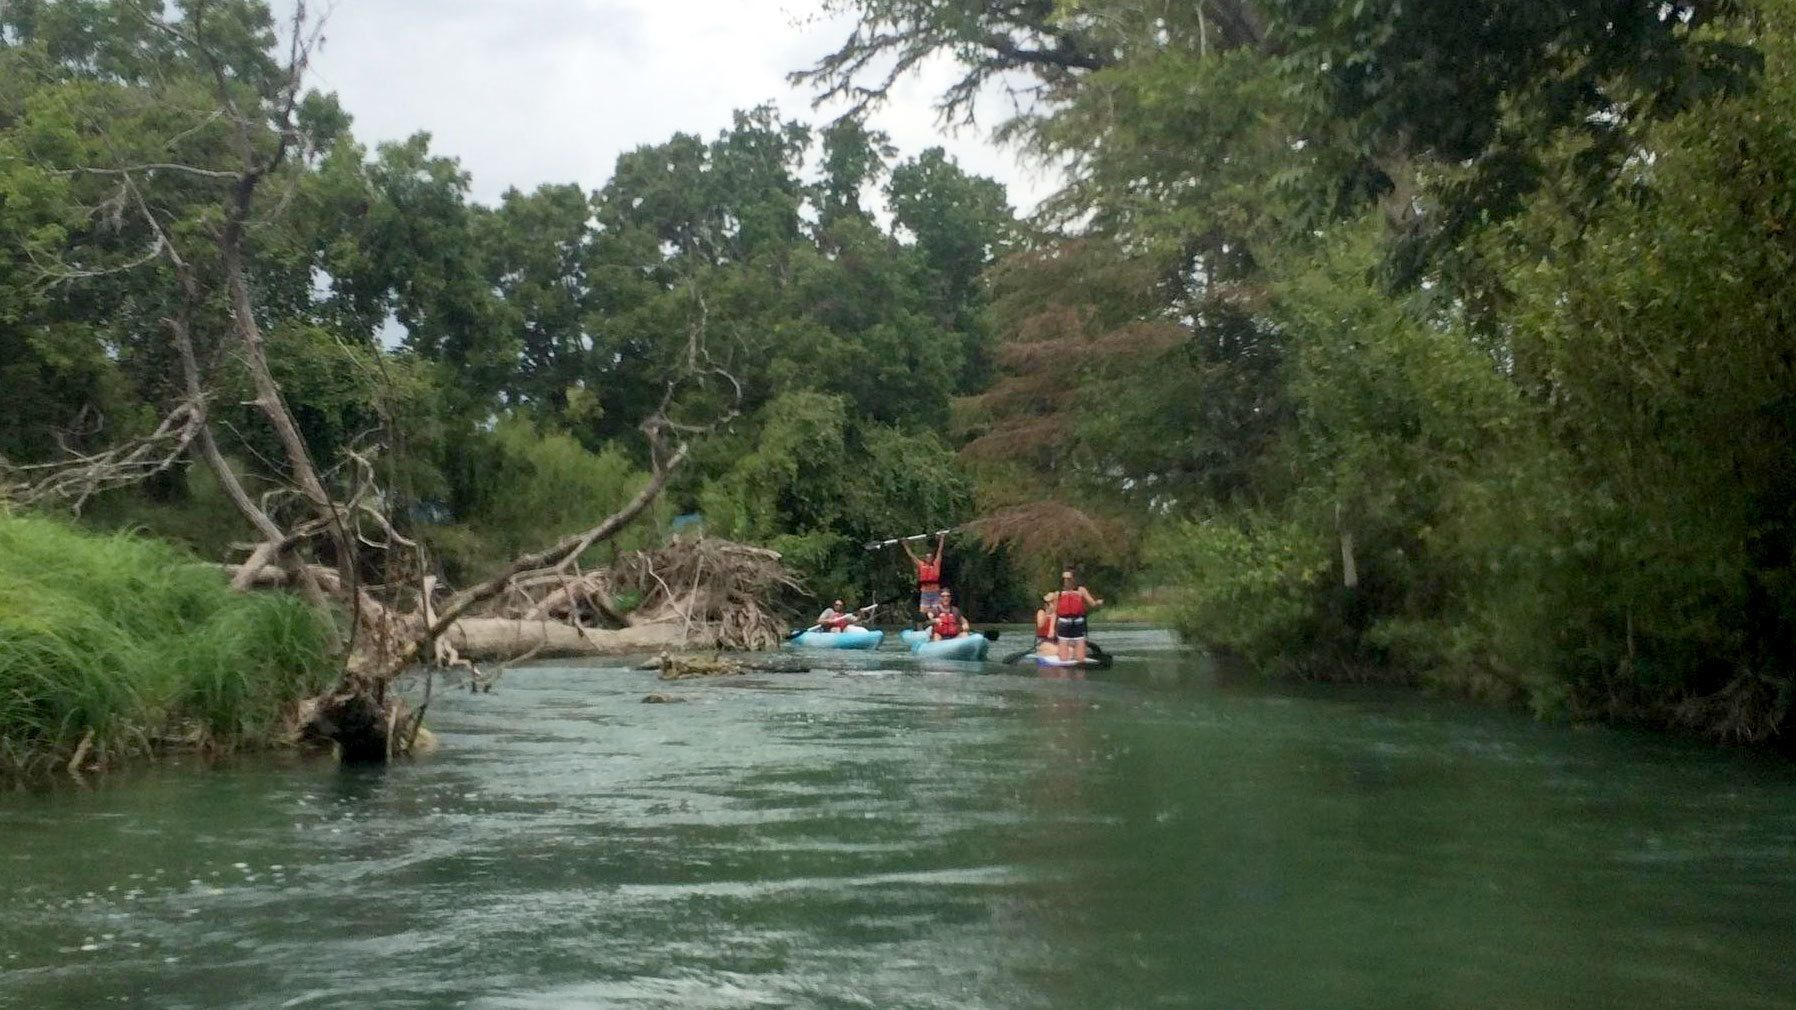 Group on a river in Austin